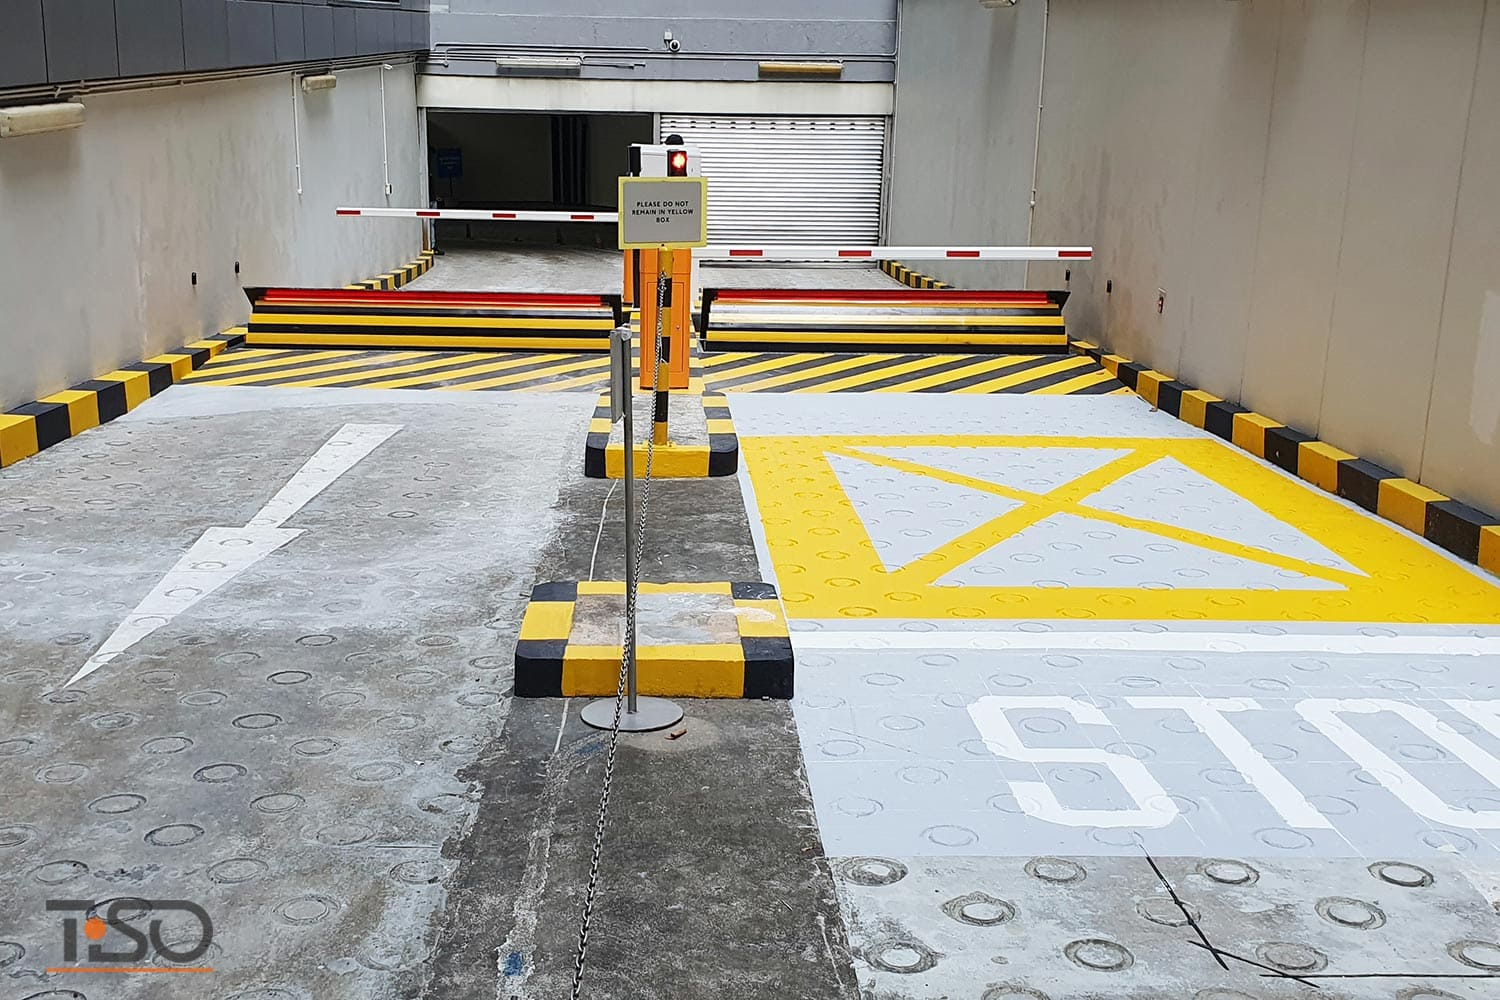 High security Speedbump, Ministry of Finance, Singapore